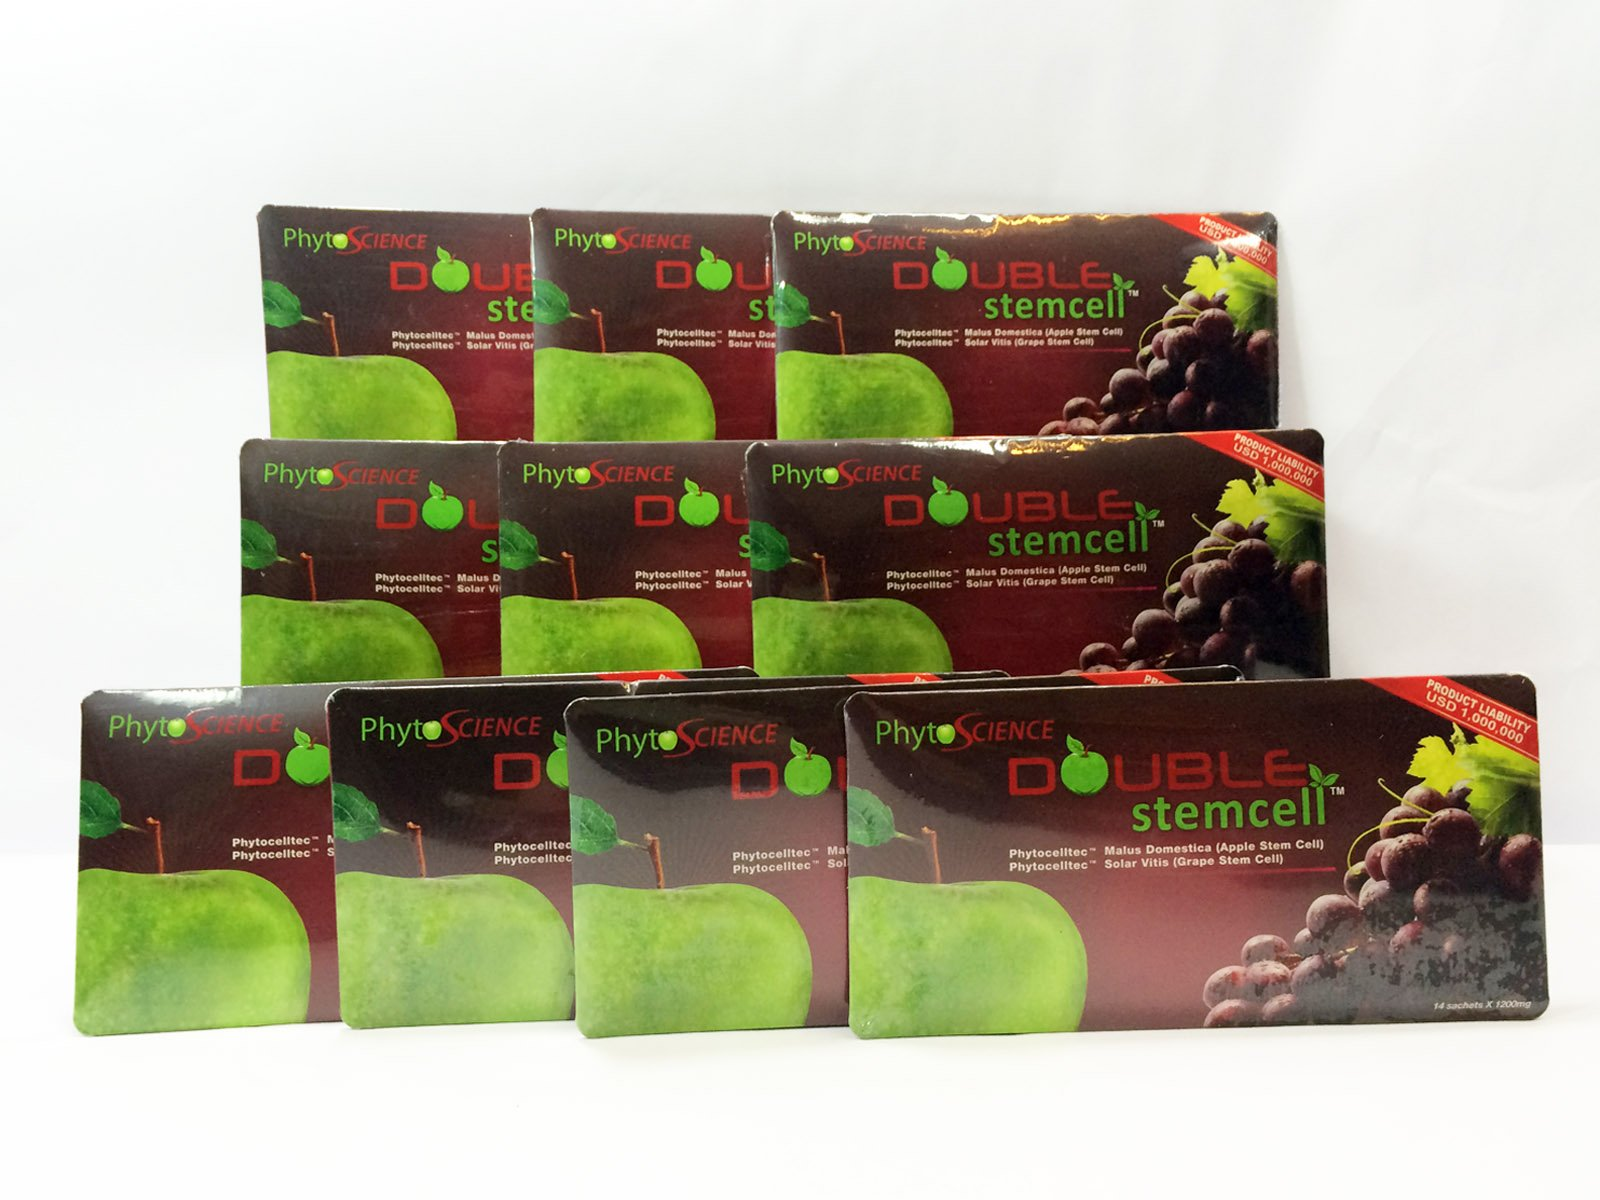 Phytoscience PhytoCellTec Apple Grape Double StemCell stem cell - Best Health Anti Aging Antioxidation Skin Care and Weight Loss - 11 Pack ( 154 Sachets ) Swiss Quality Formula